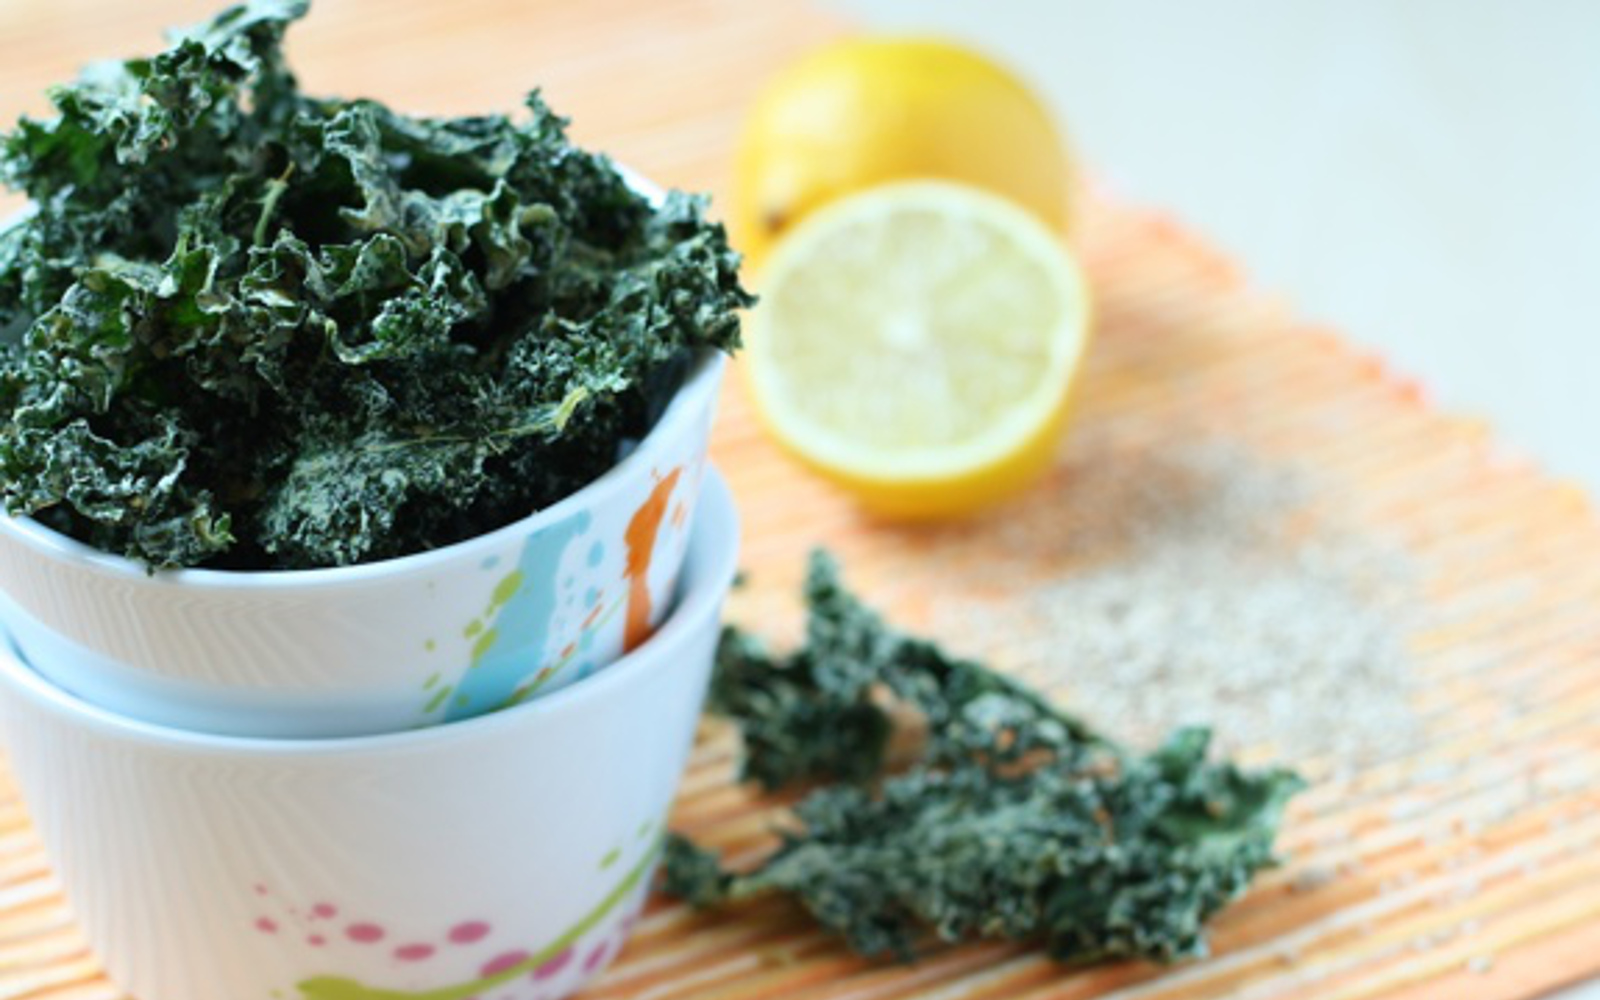 Vegan Raw Lemon Tahini Kale Chips